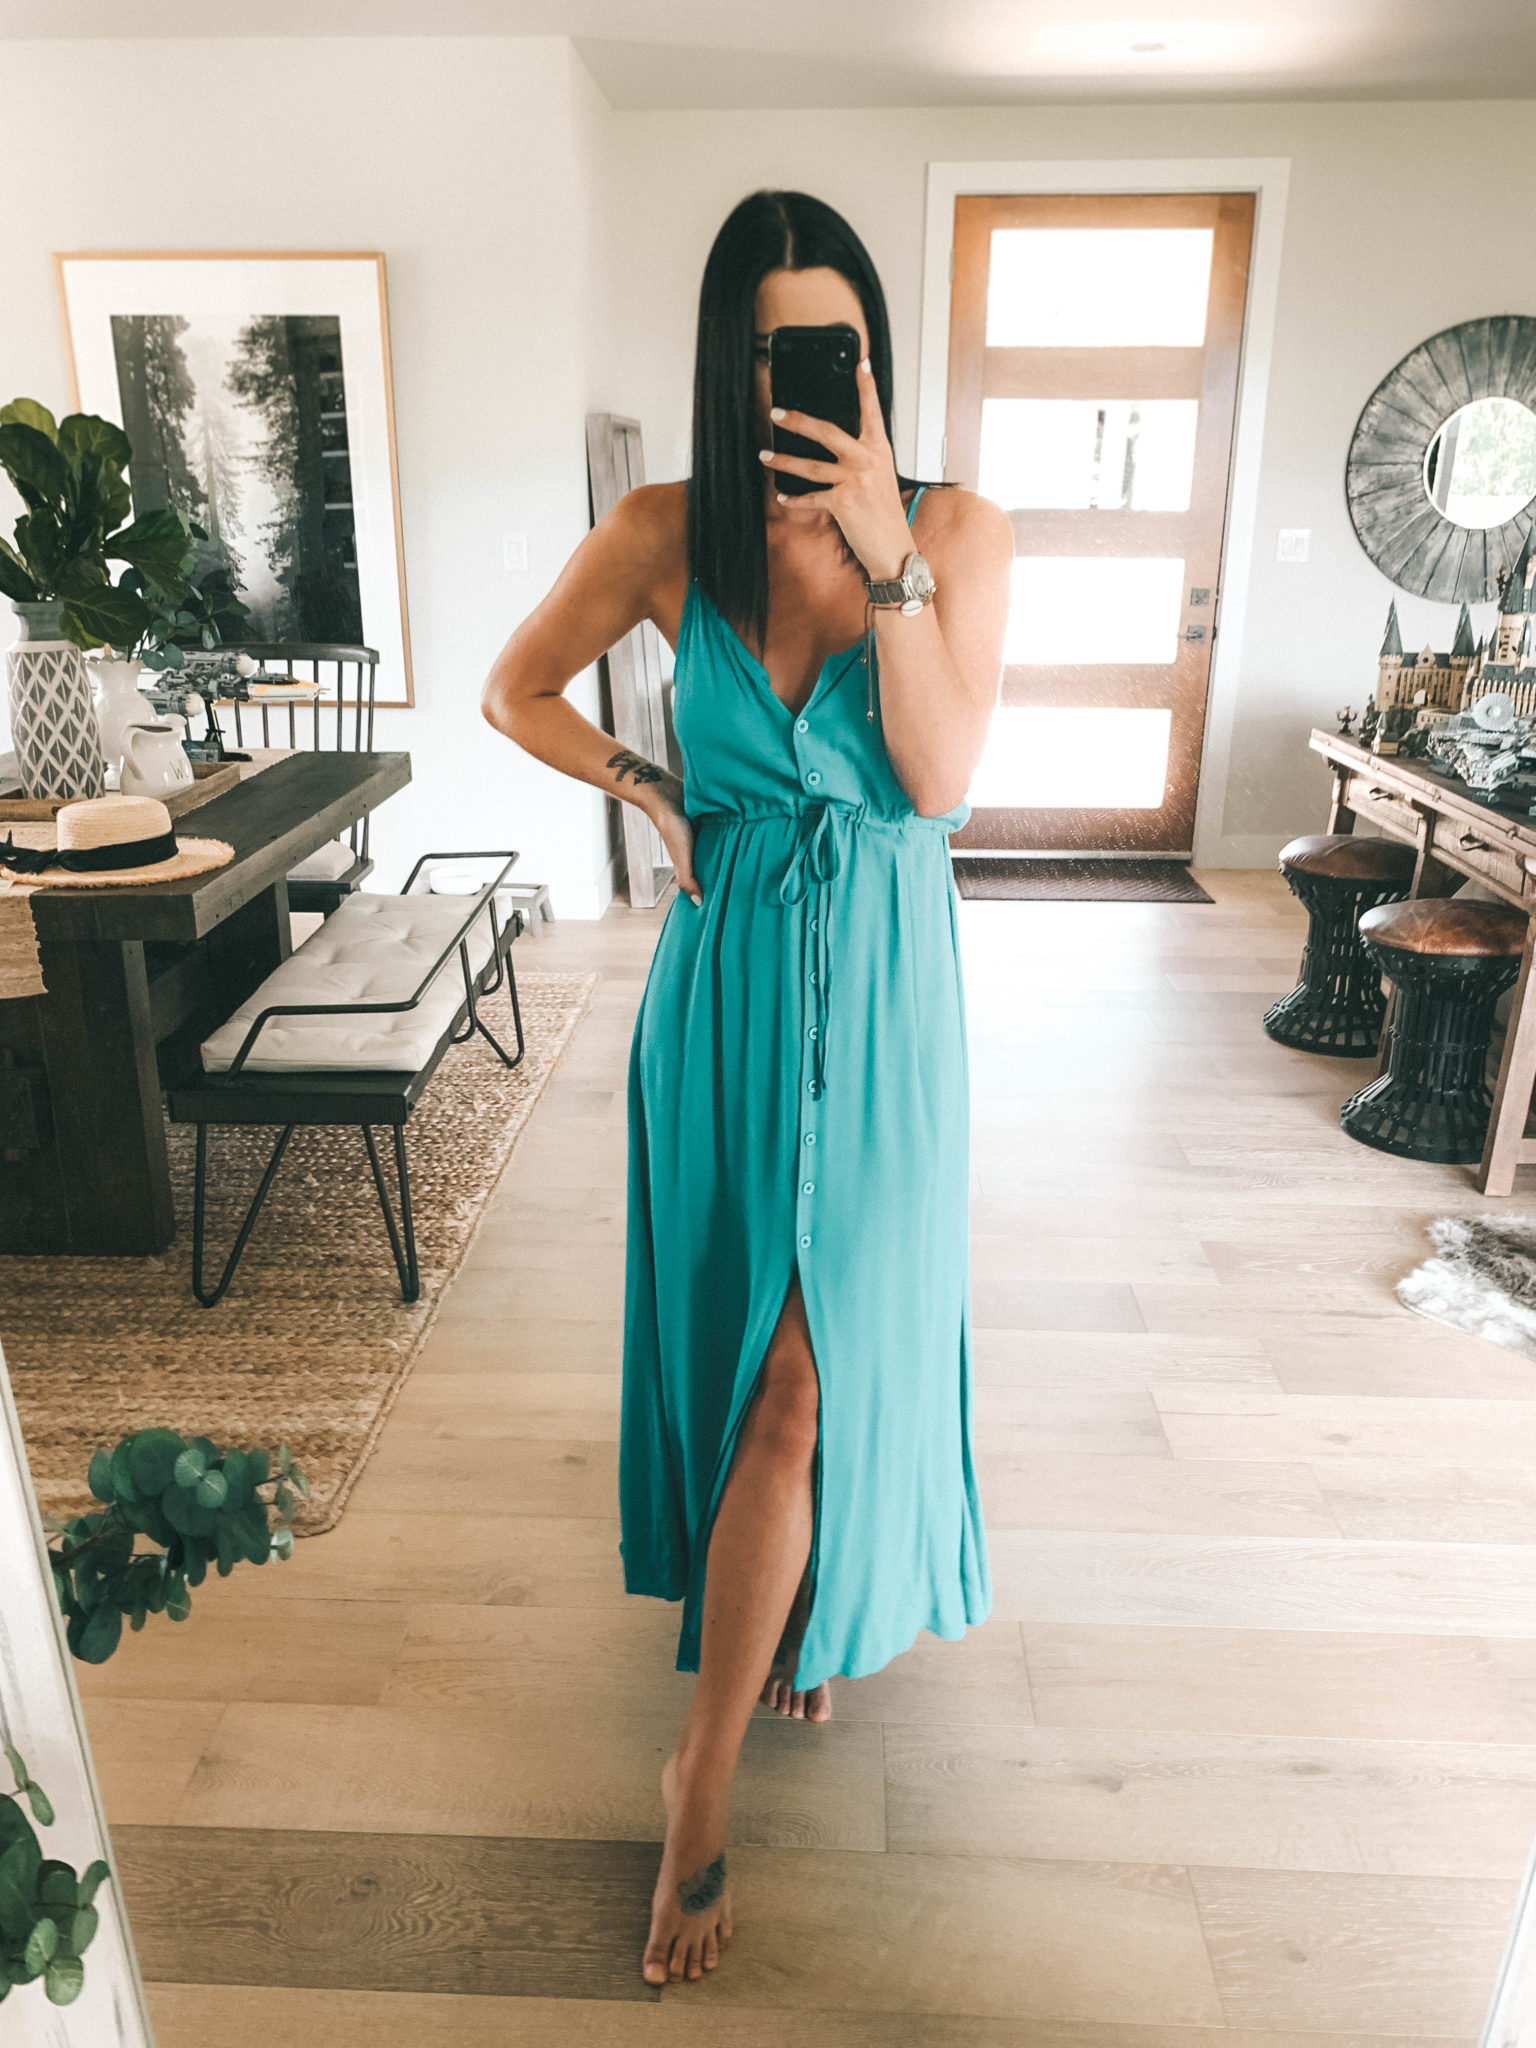 Amaryllis Apparel Abroad Turks & Caicos Summer Try-On by popular Austin fashion blog, Dressed to Kill: image of a woman wearing a turquoise Amaryllis Apparel Telia button maxi dress